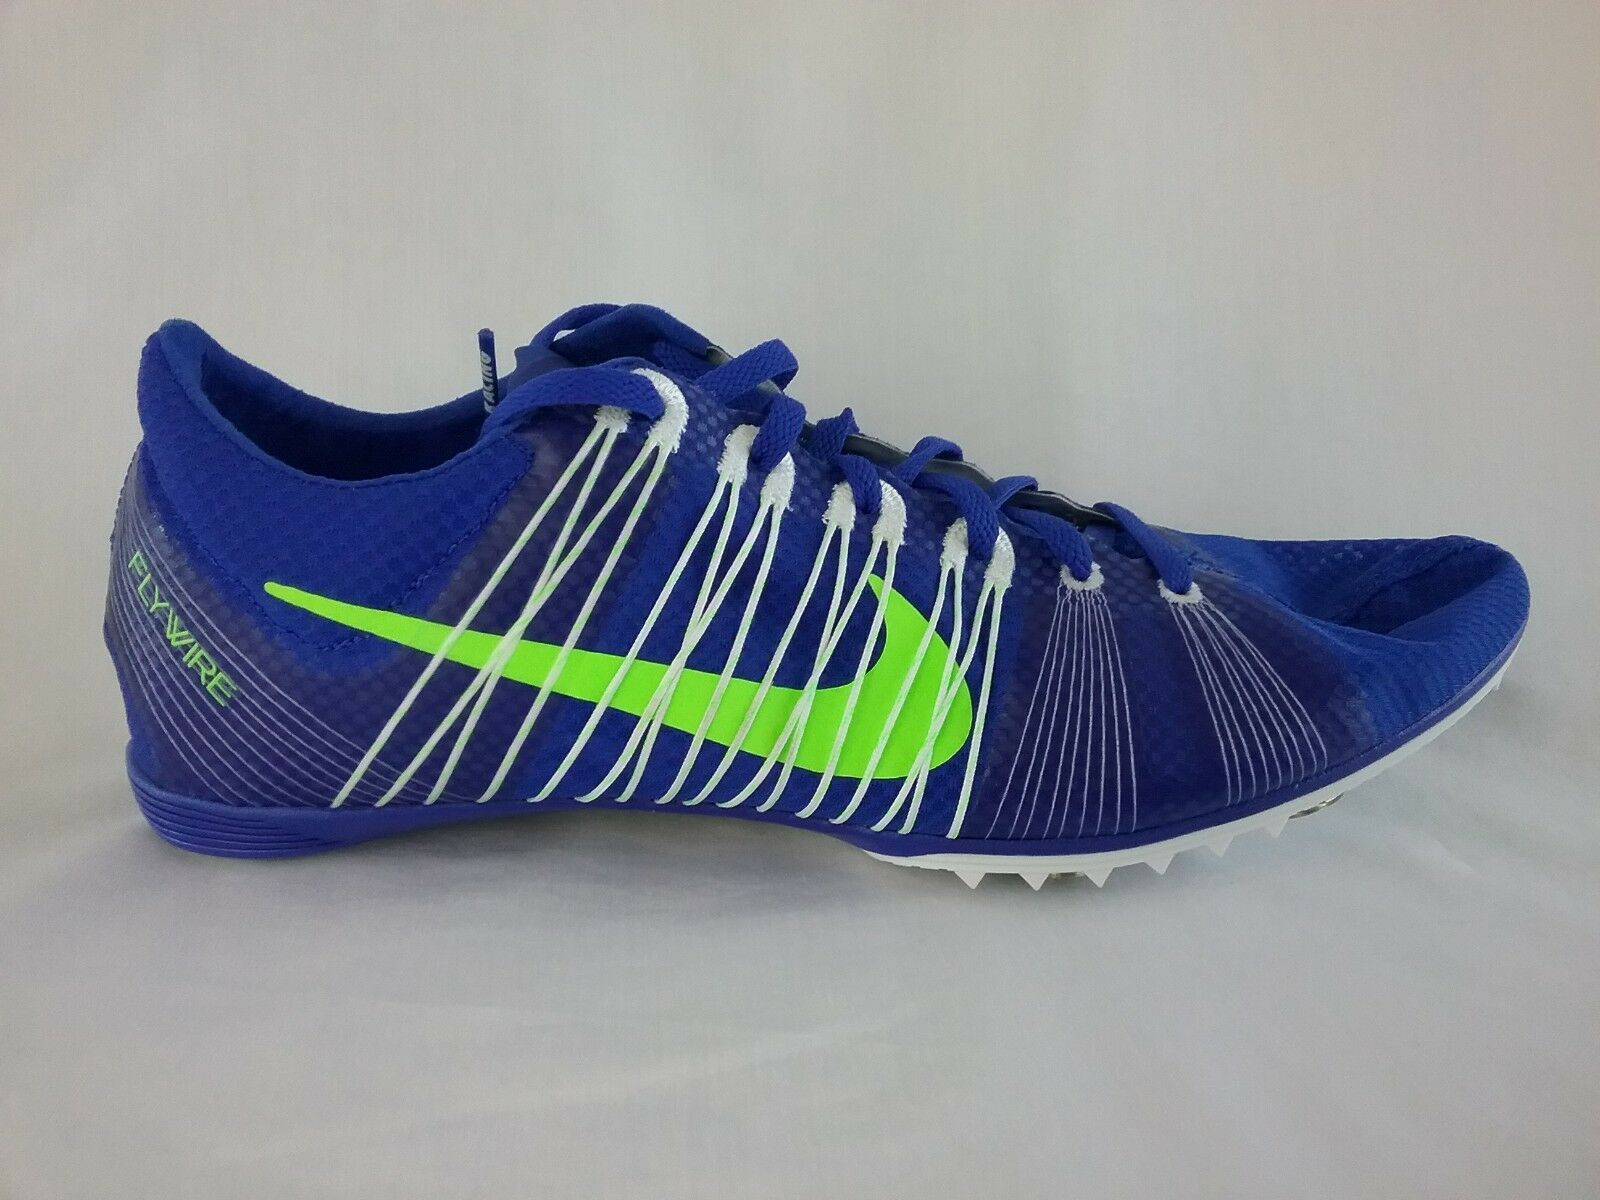 Nike Zoom Victory 2 Middle Distance Track XC shoes, bluee w Green Swoosh, 13